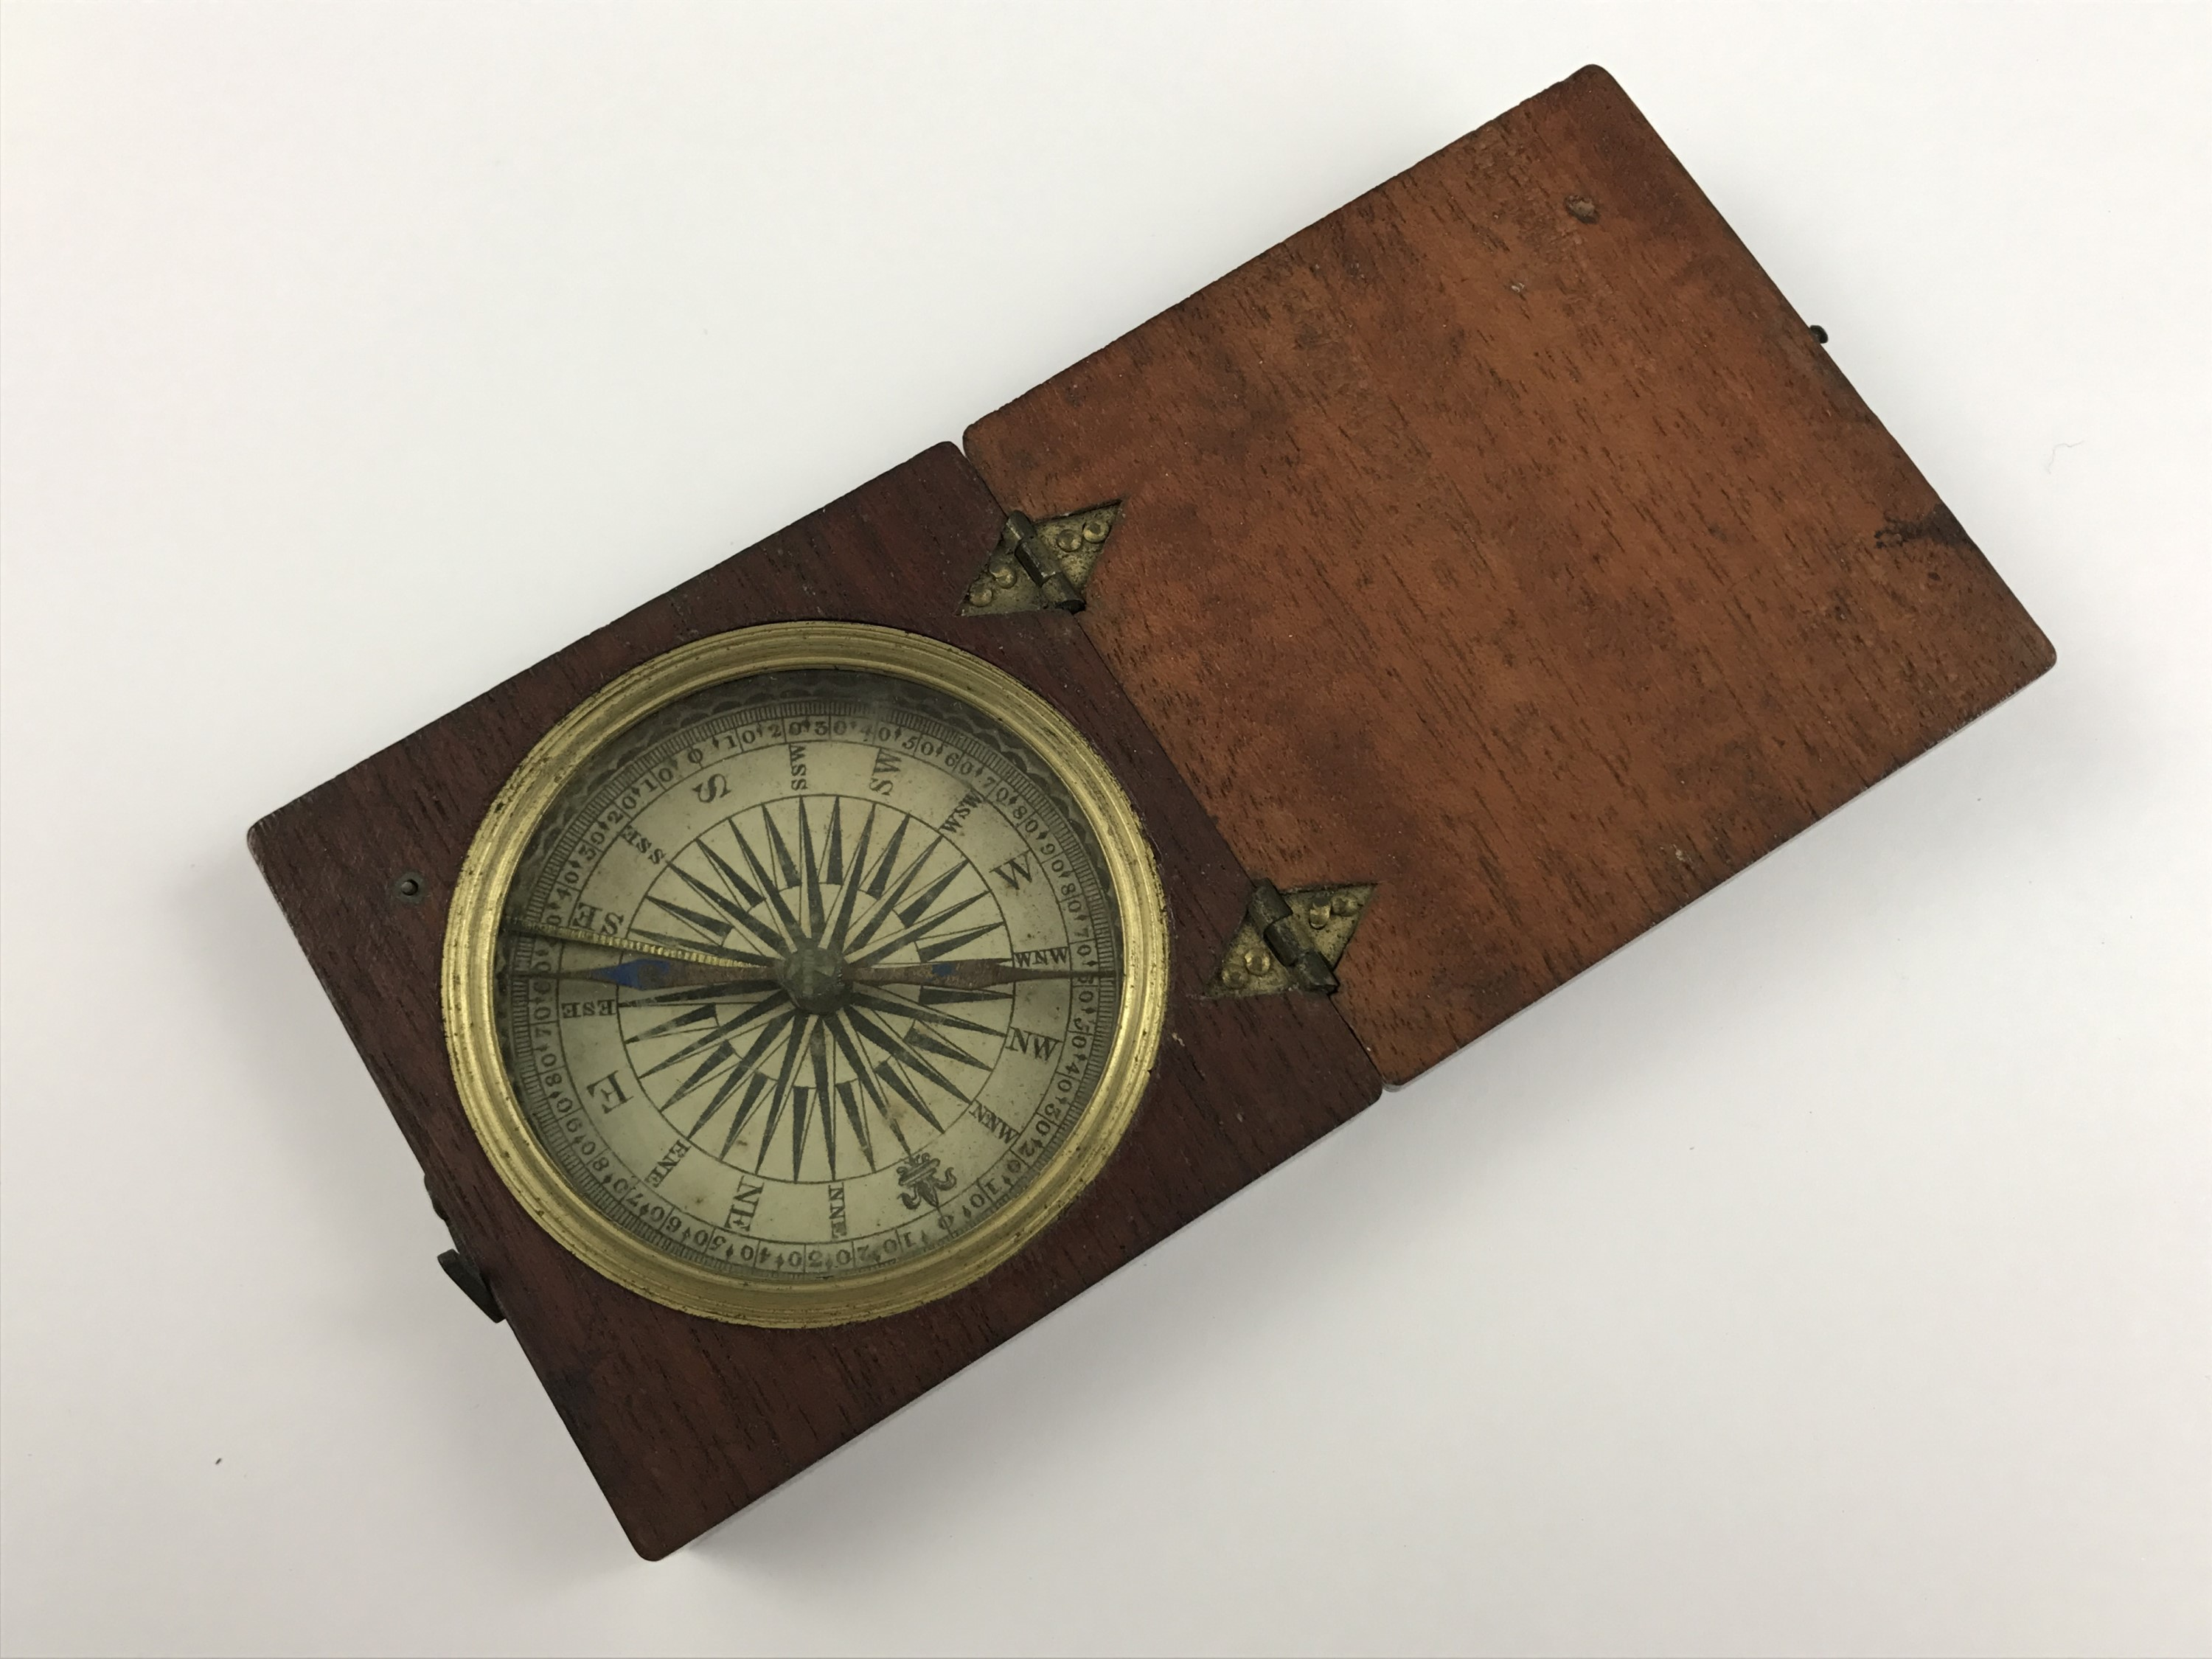 Lot 19 - Georgian mahogany-cased pocket magnetic compass with printed rose, 7 x 7 cm